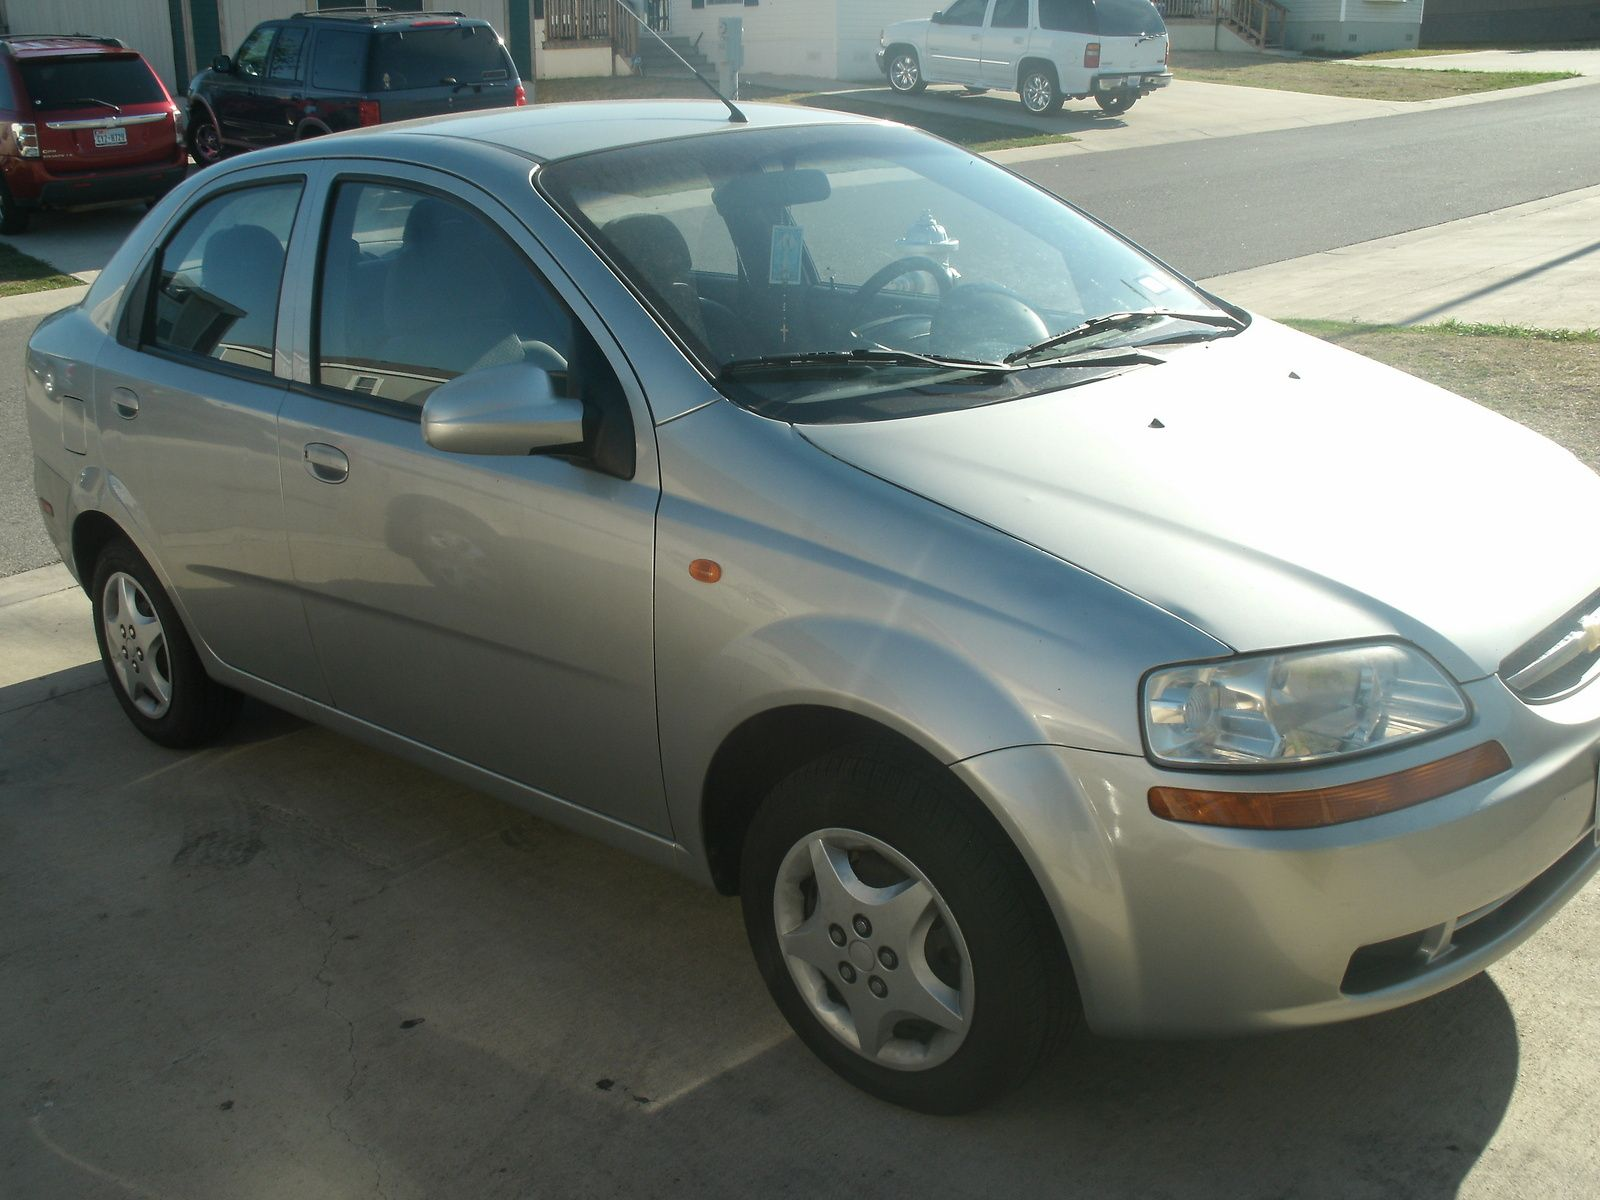 Best Combination Of Features 2004 Chevrolet Aveo With Additional Much Improved Interior With 2004 Chevrolet Aveo